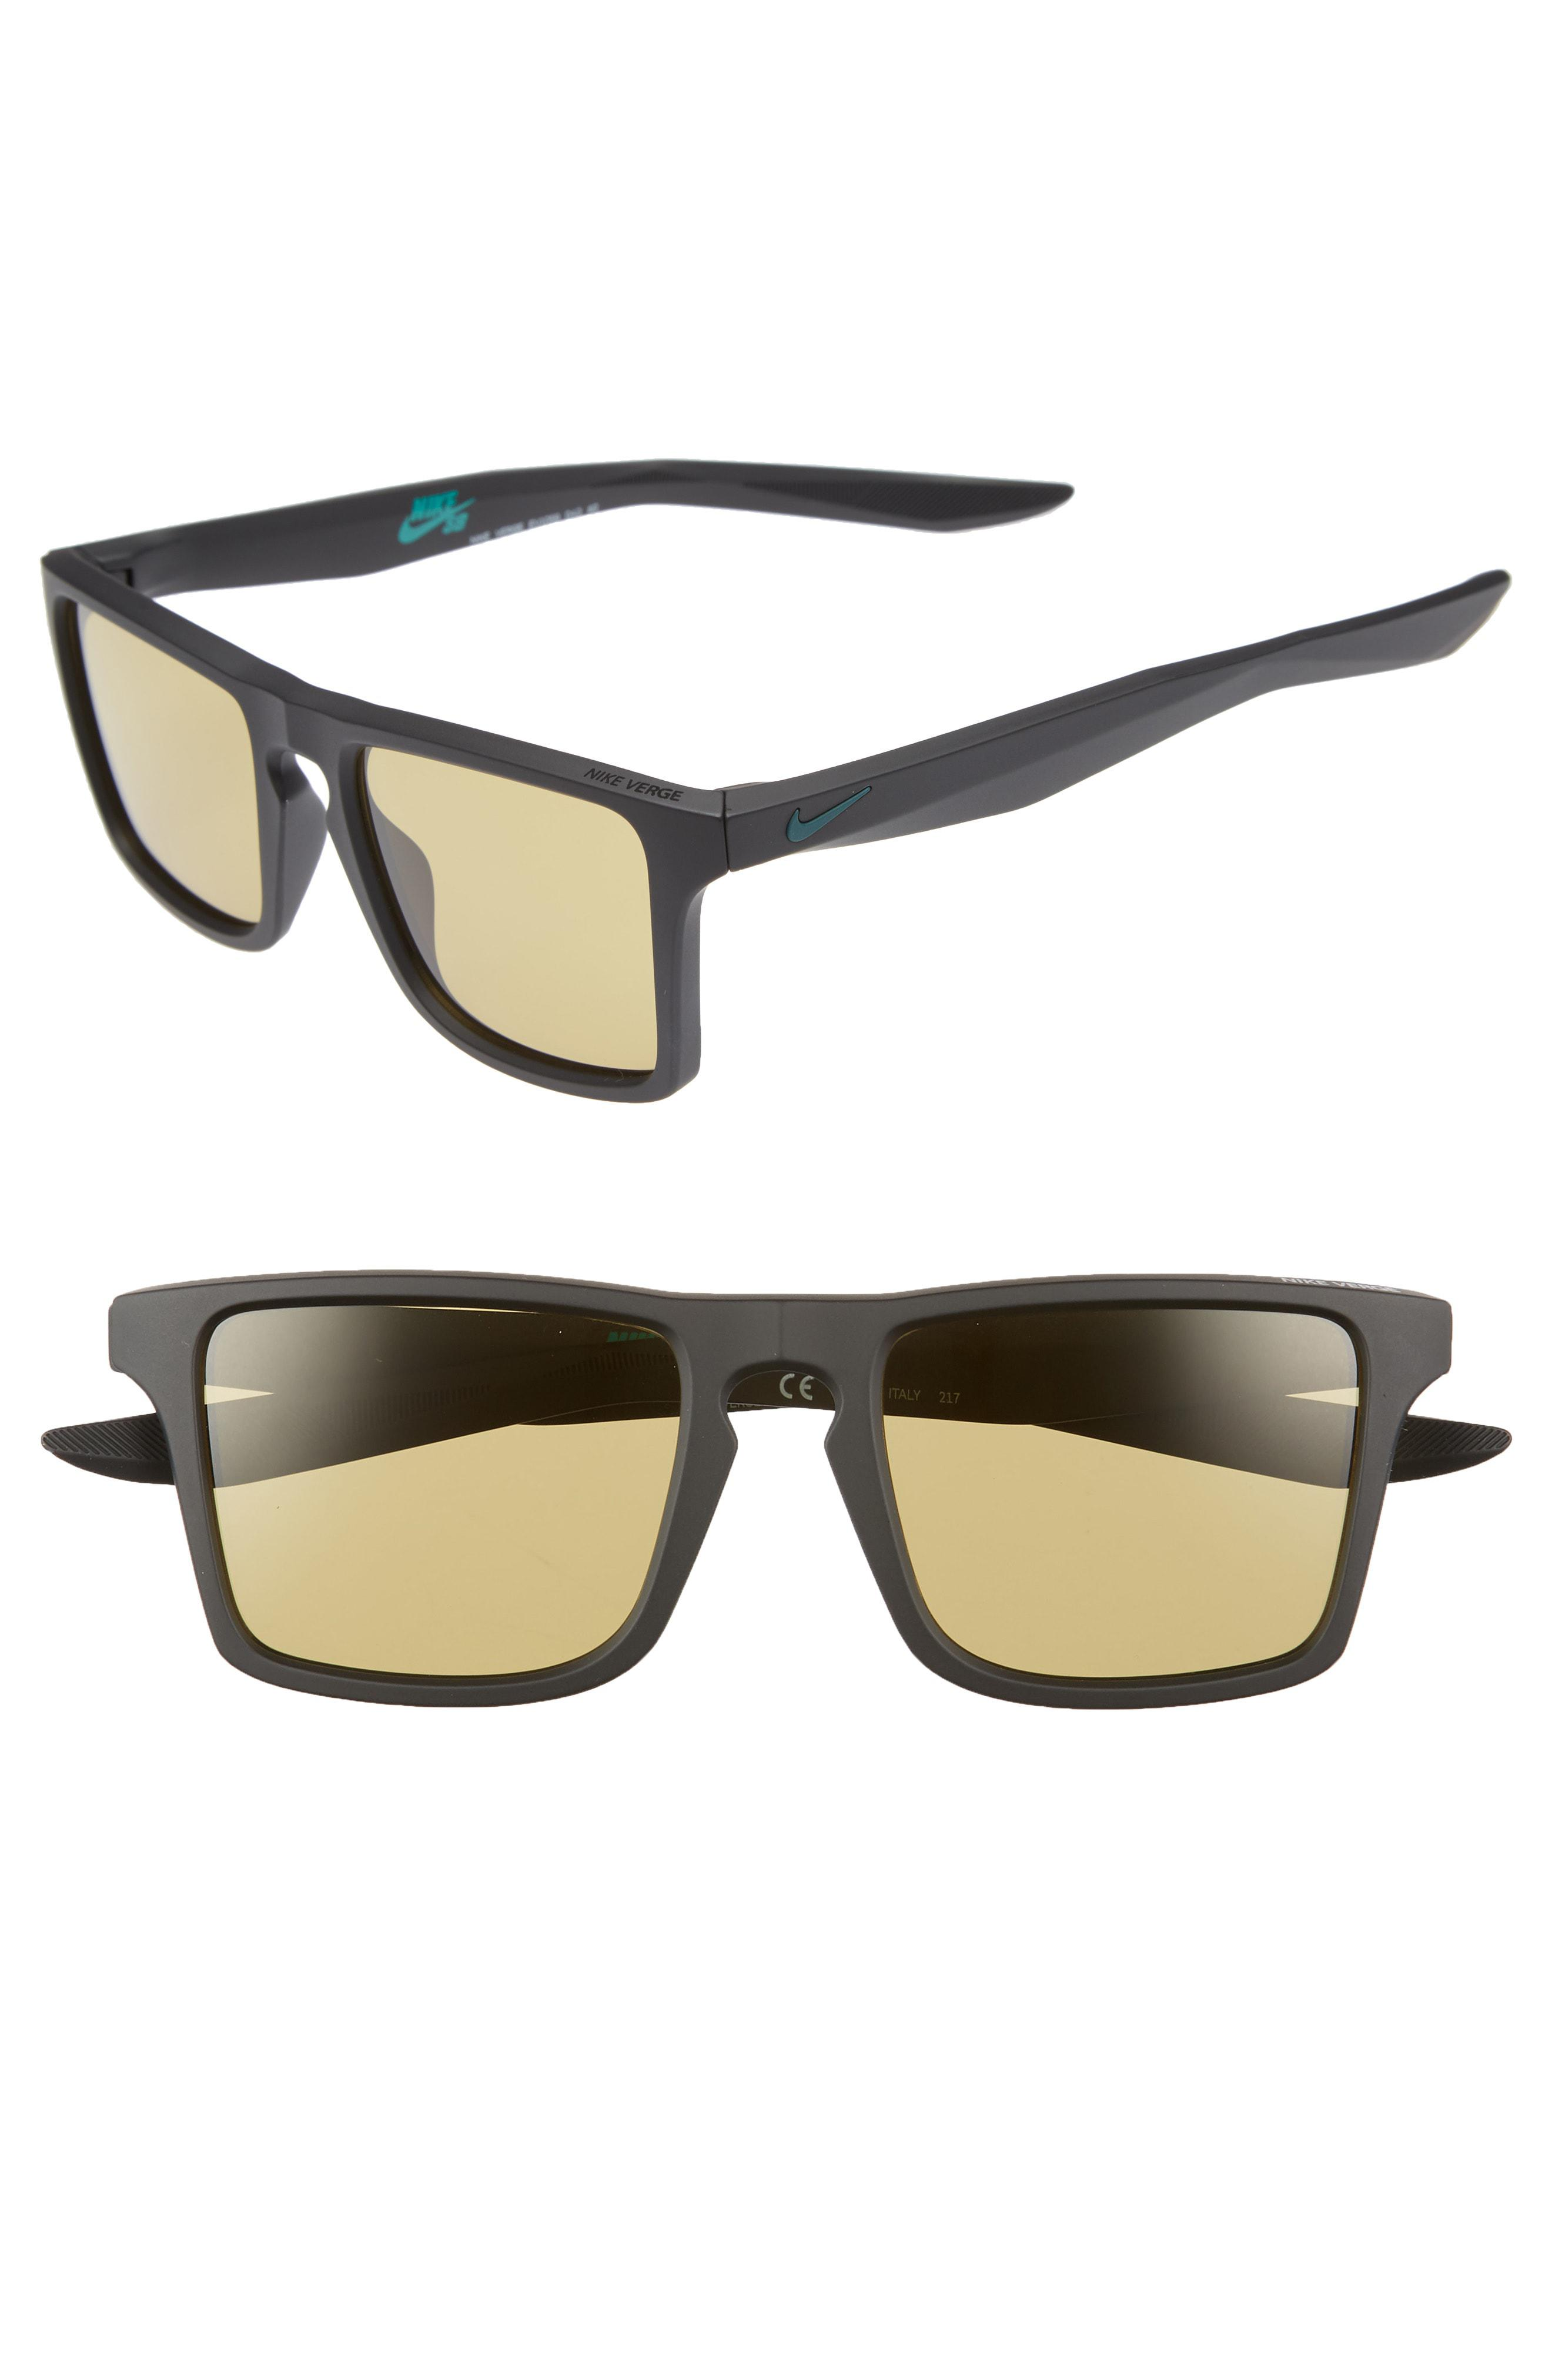 58261a3b31 Lyst - Nike Verge 52mm Sunglasses in Black for Men